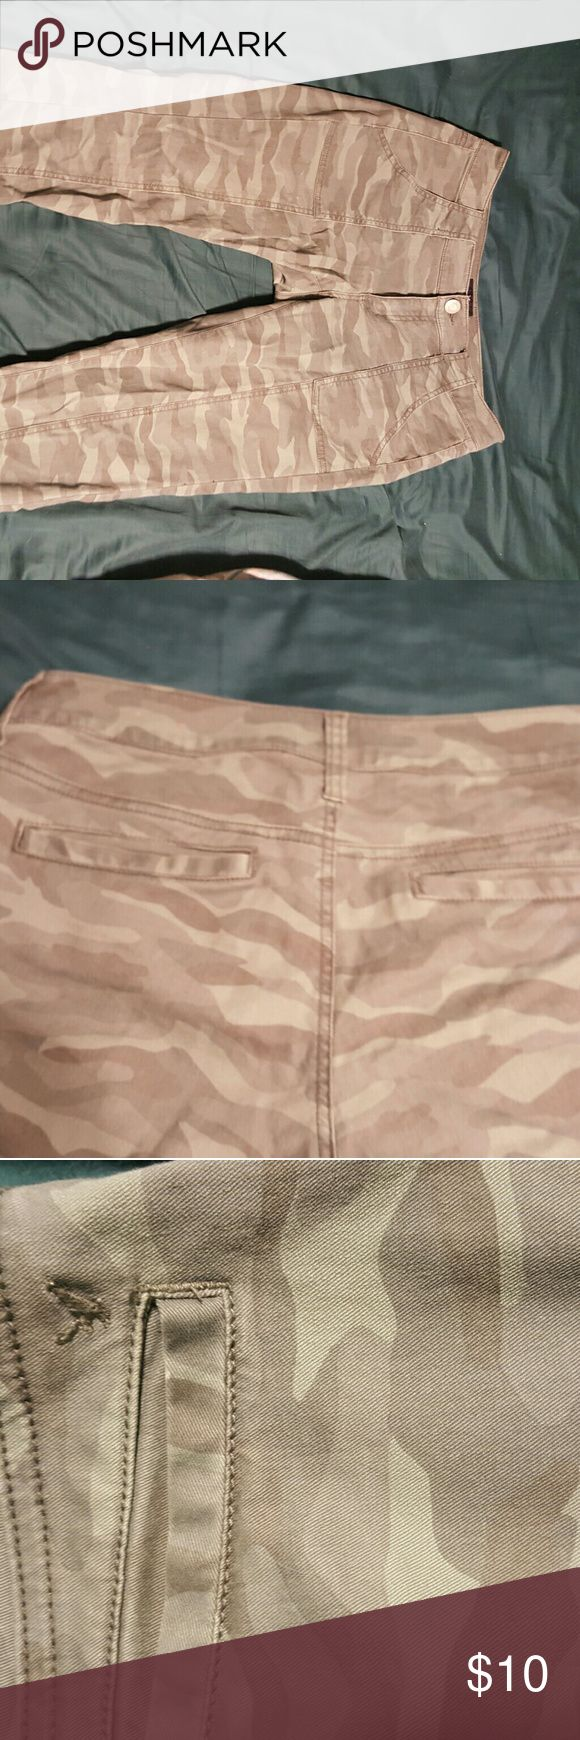 American Eagle camouflage skinny jeans American Eagle cargo camo skinny jeans size 4 American Eagle Outfitters Pants Skinny